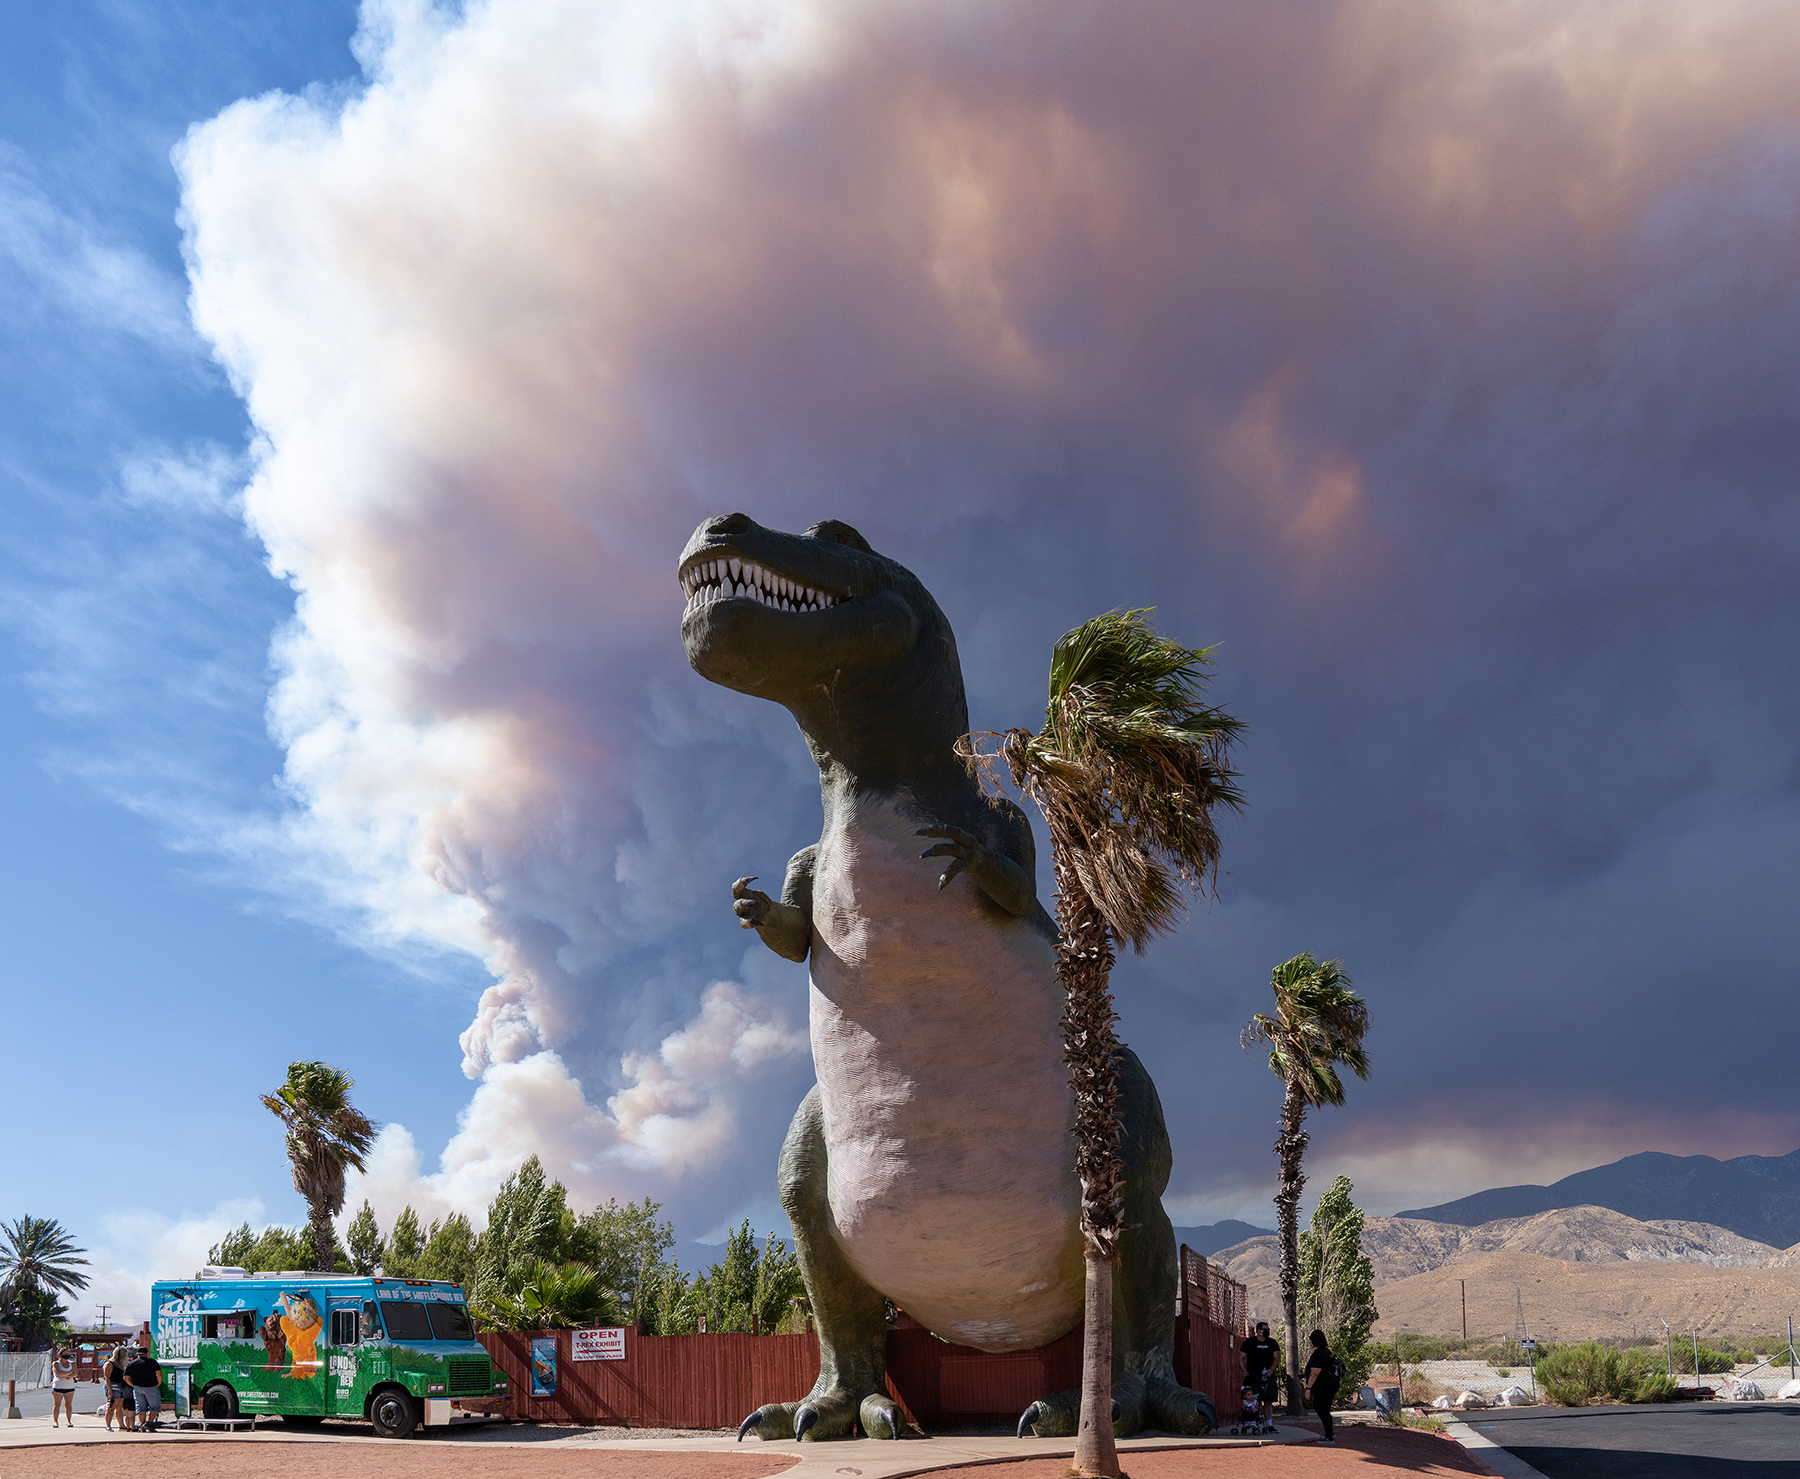 This year's Apple fire, which affected Riverside and San Bernardino counties, created a smoky backdrop to the Cabazon Dinosaurs roadside attraction.